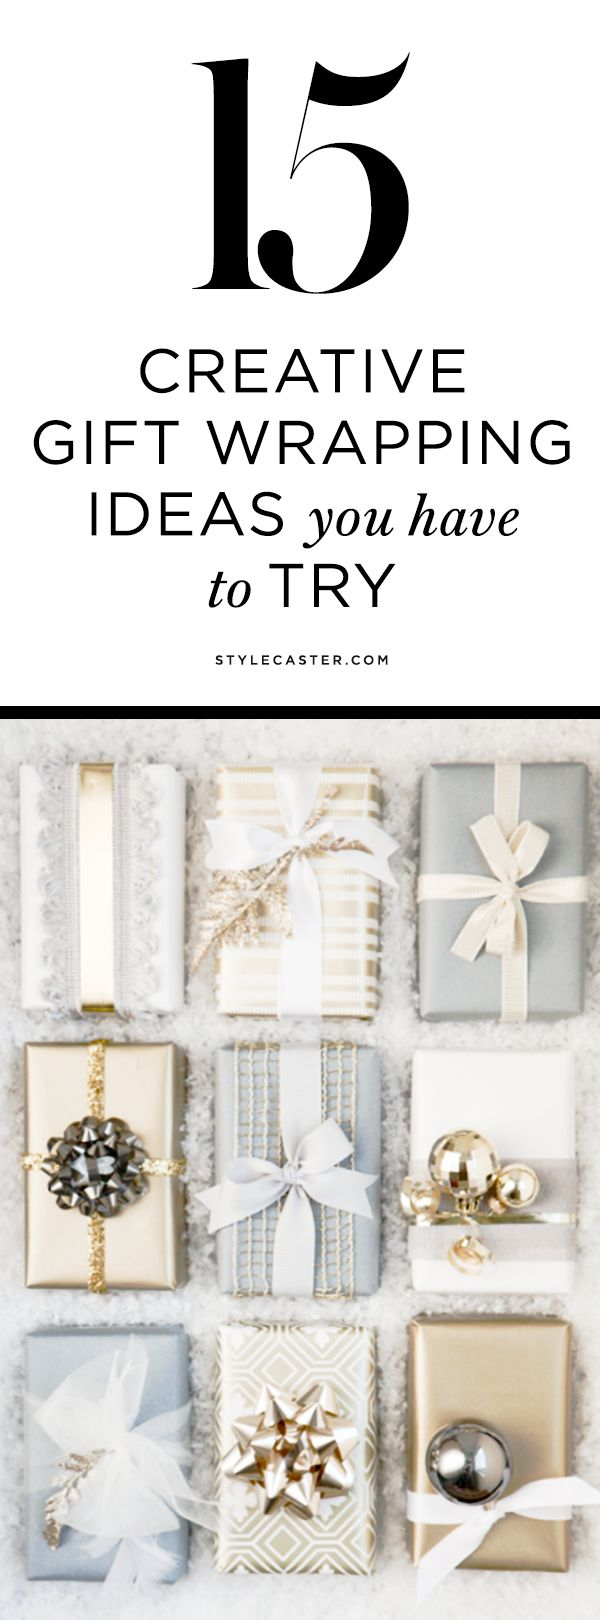 DIY Gift Wrapping Ideas for Christmas (and Beyond) | Up your gift wrapping game this Holiday season with 15 unique and creative ideas that will impress your friends and family.